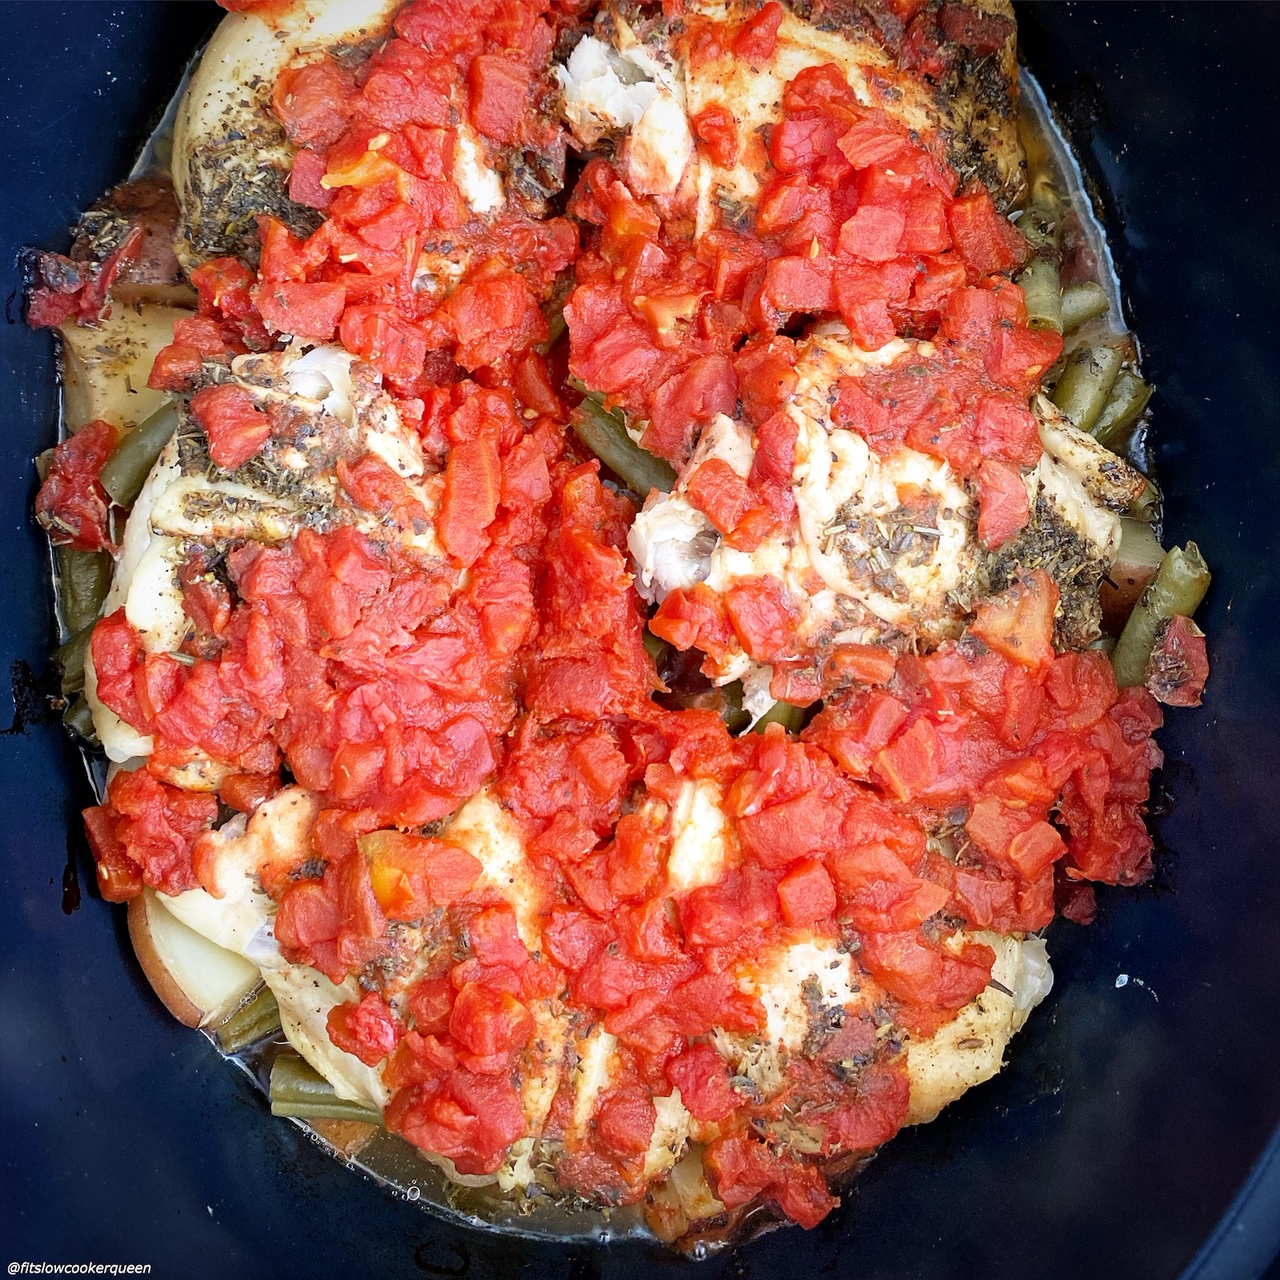 after pic of cooked 5-Ingredient Slow CookerInstant Pot Italian Chicken (Paleo, Whole30) in the slow cooker